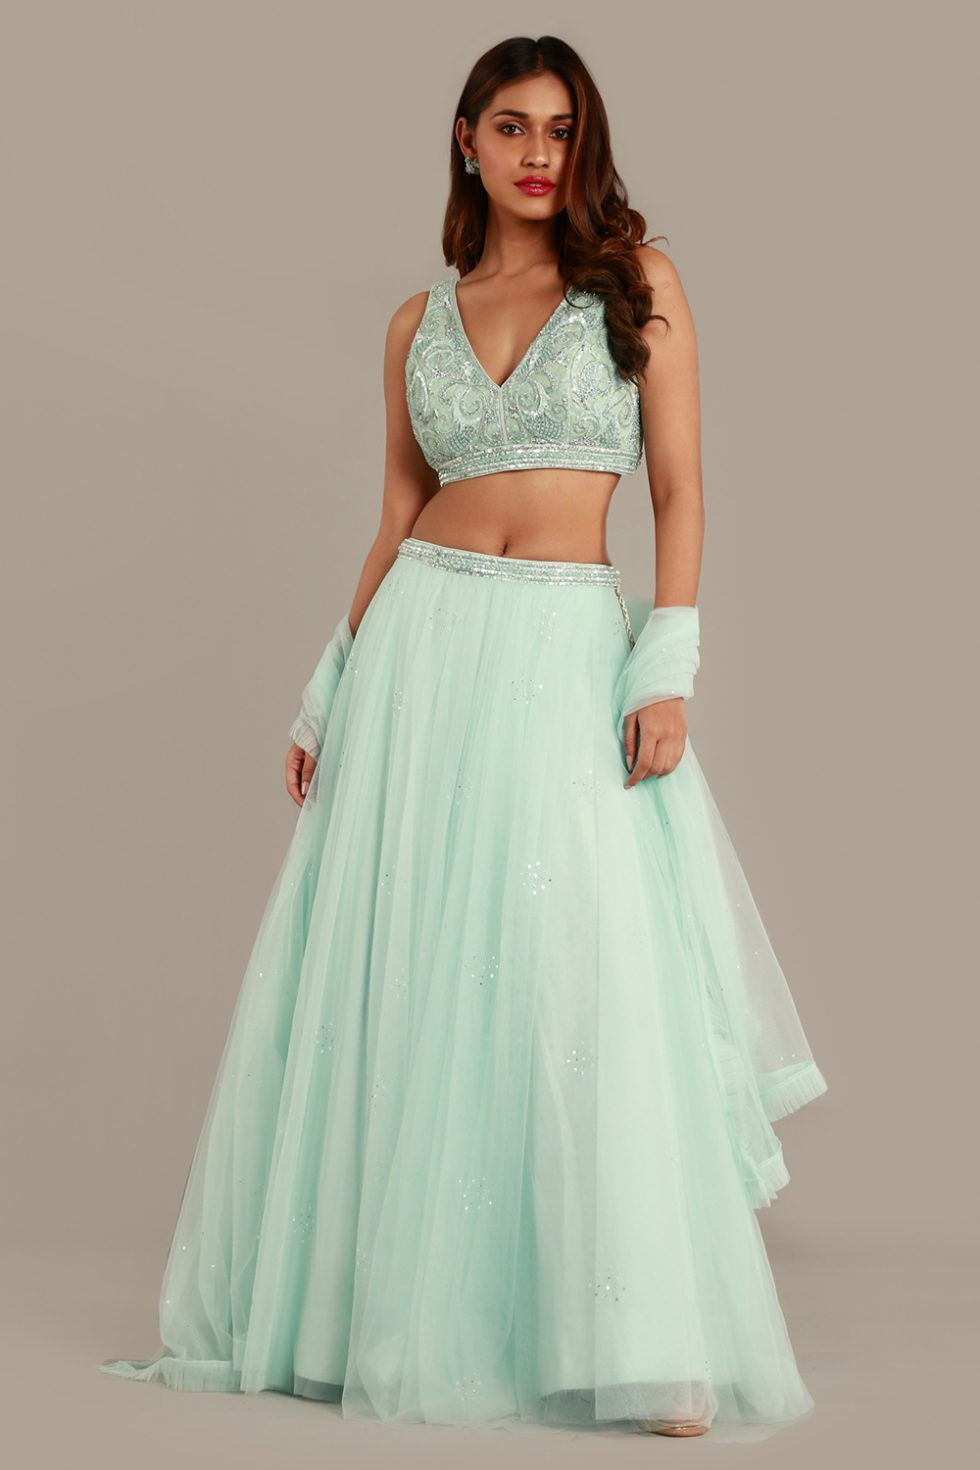 Baby blue tulle lehenga set with frill dupatta and matching embroidered choli with silver details